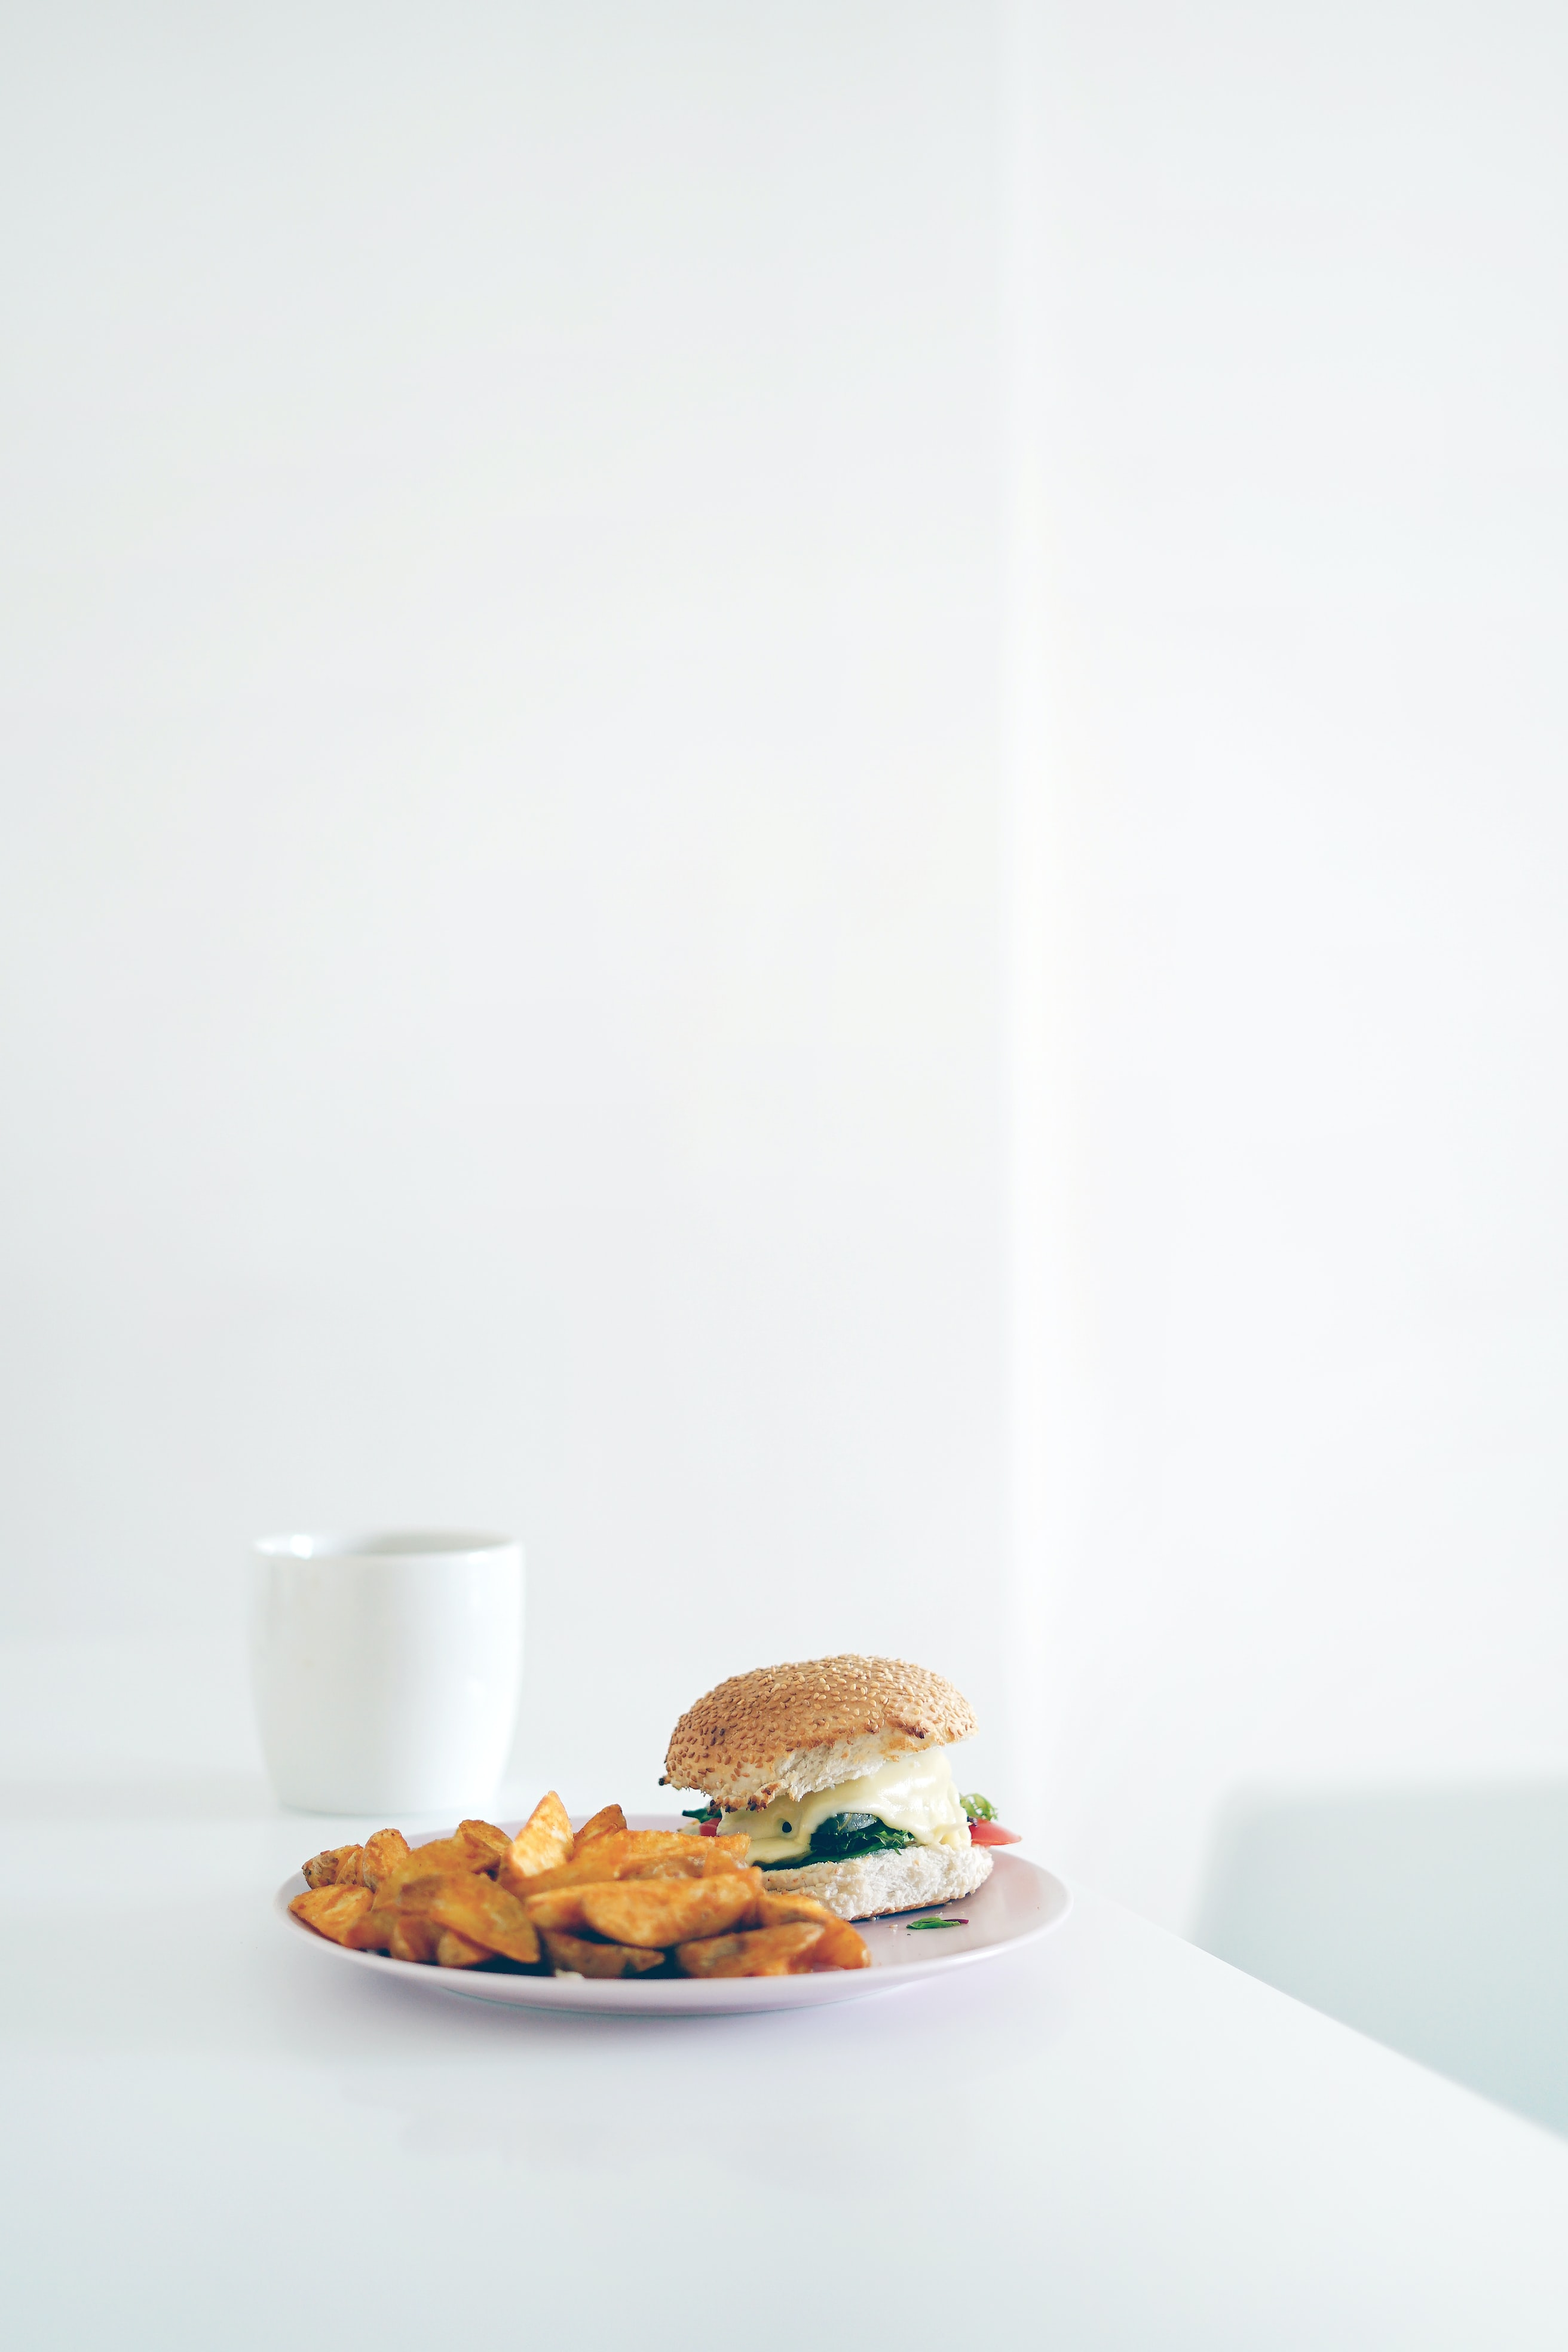 sandwich and potato fries on white plate